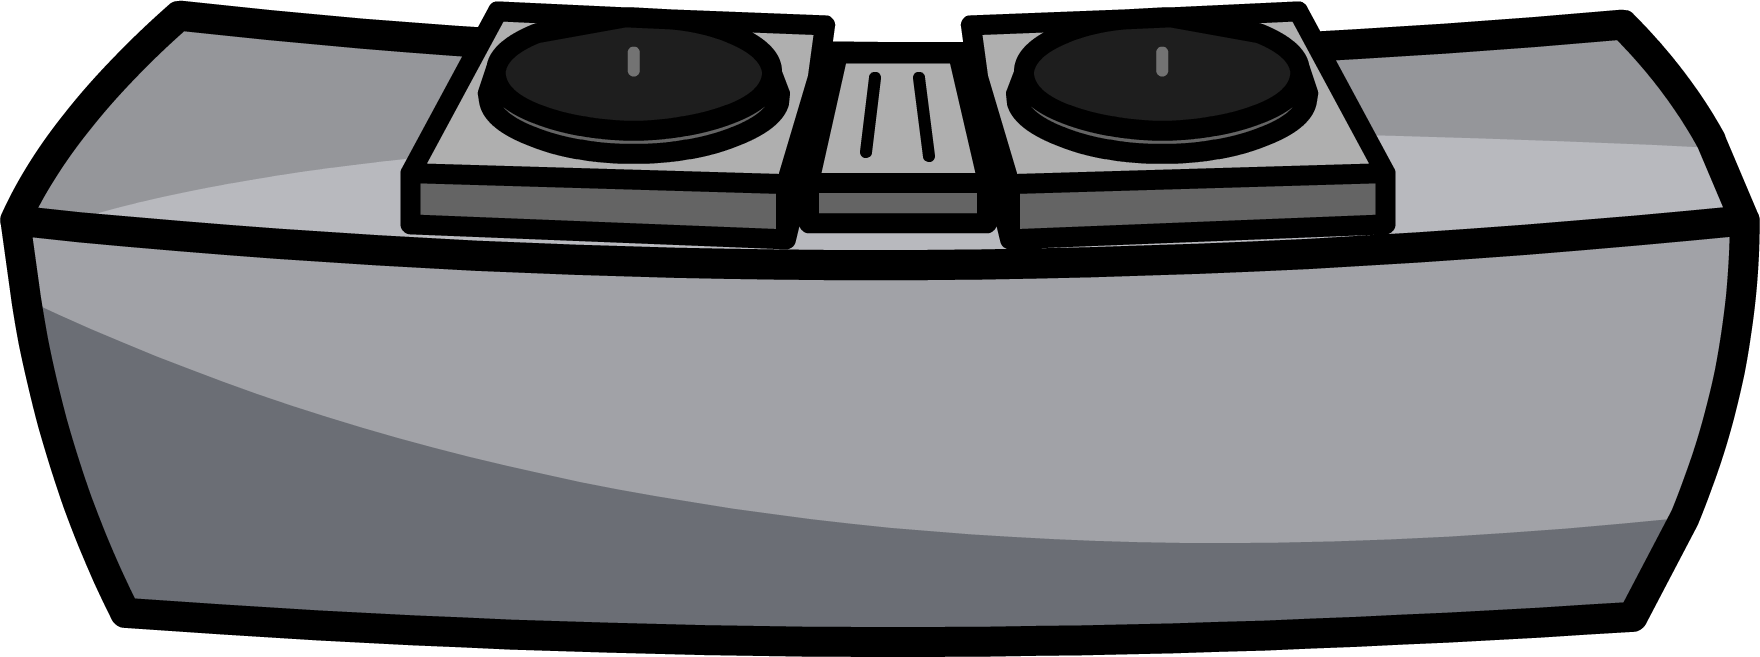 Clipart table club penguin. Image dj png rewritten